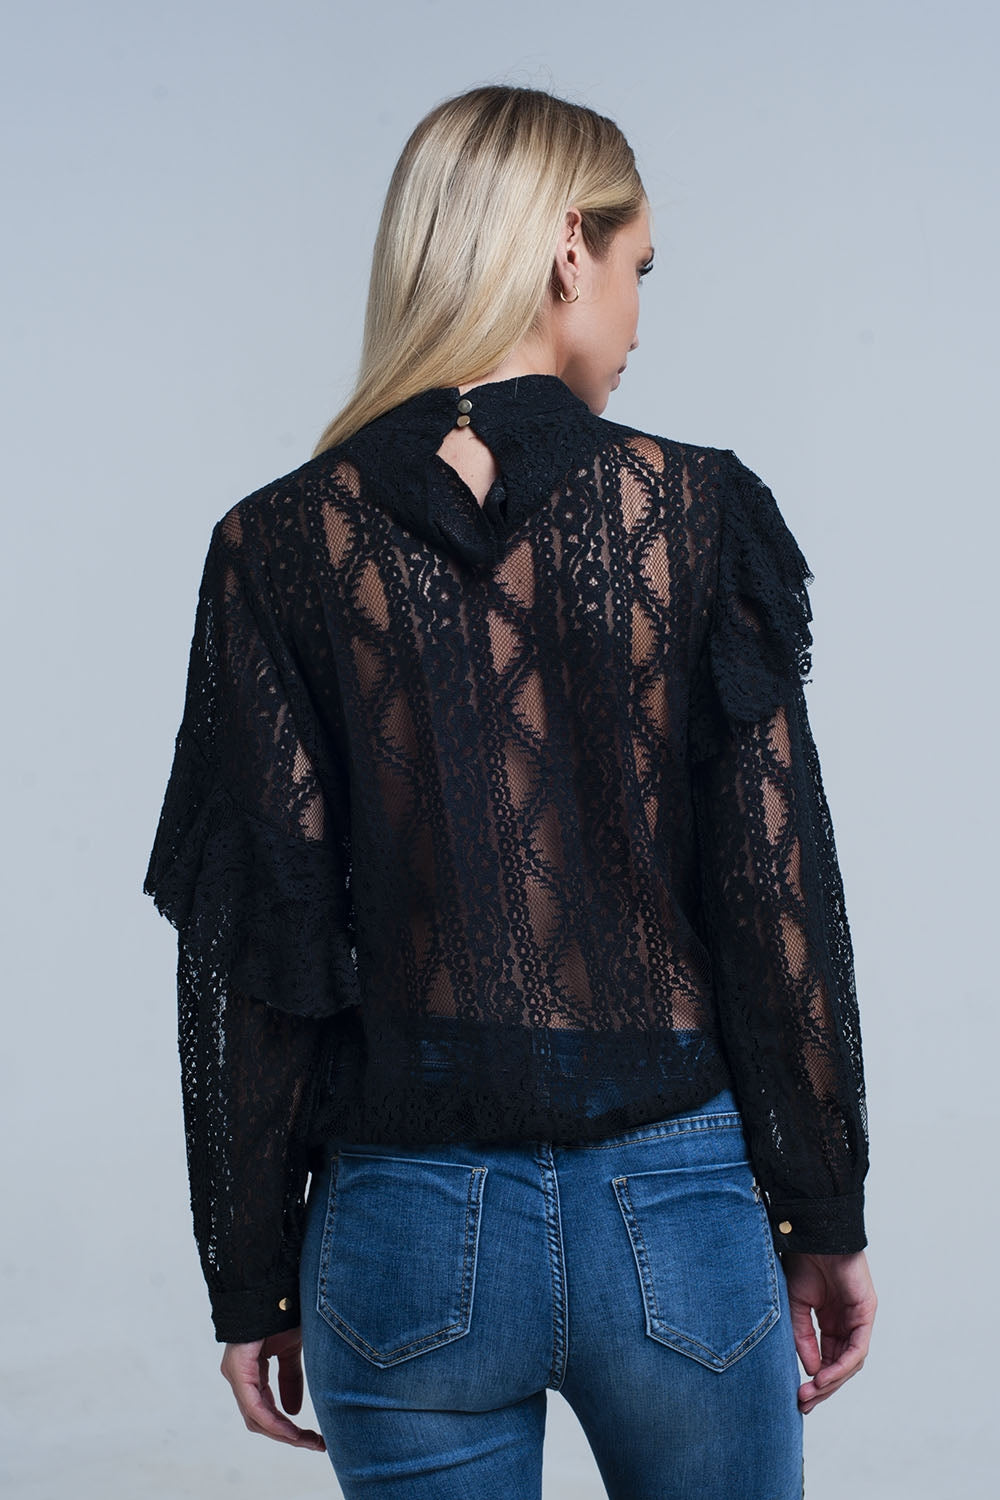 Black Lacy Shirt and Ruffles - Heart Entrepreneurs